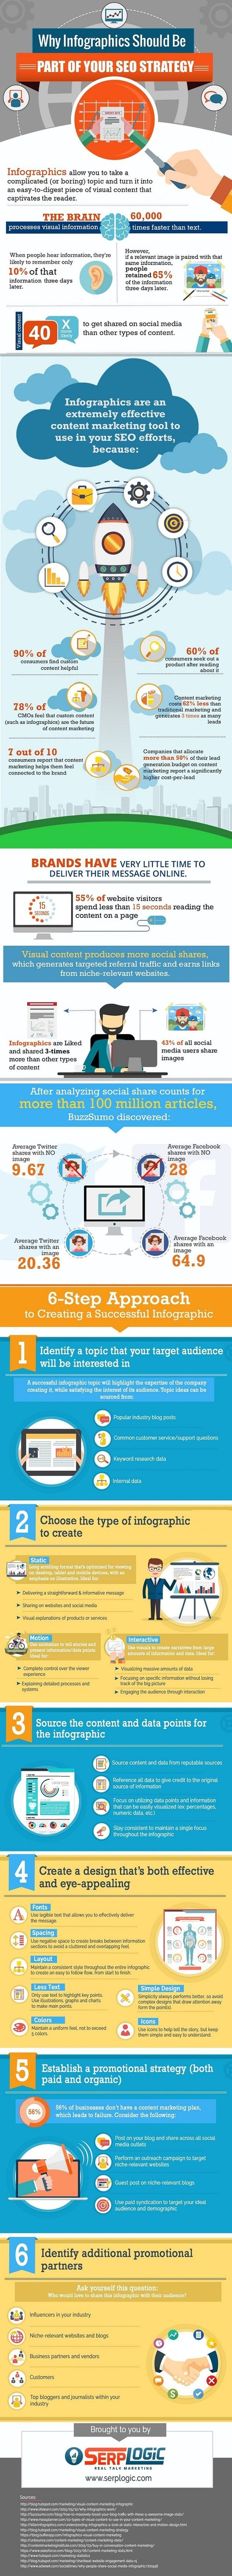 Six Steps to Creating a Successful Infographic for Your Business [Infographic] | Integrated Brand Communications | Scoop.it